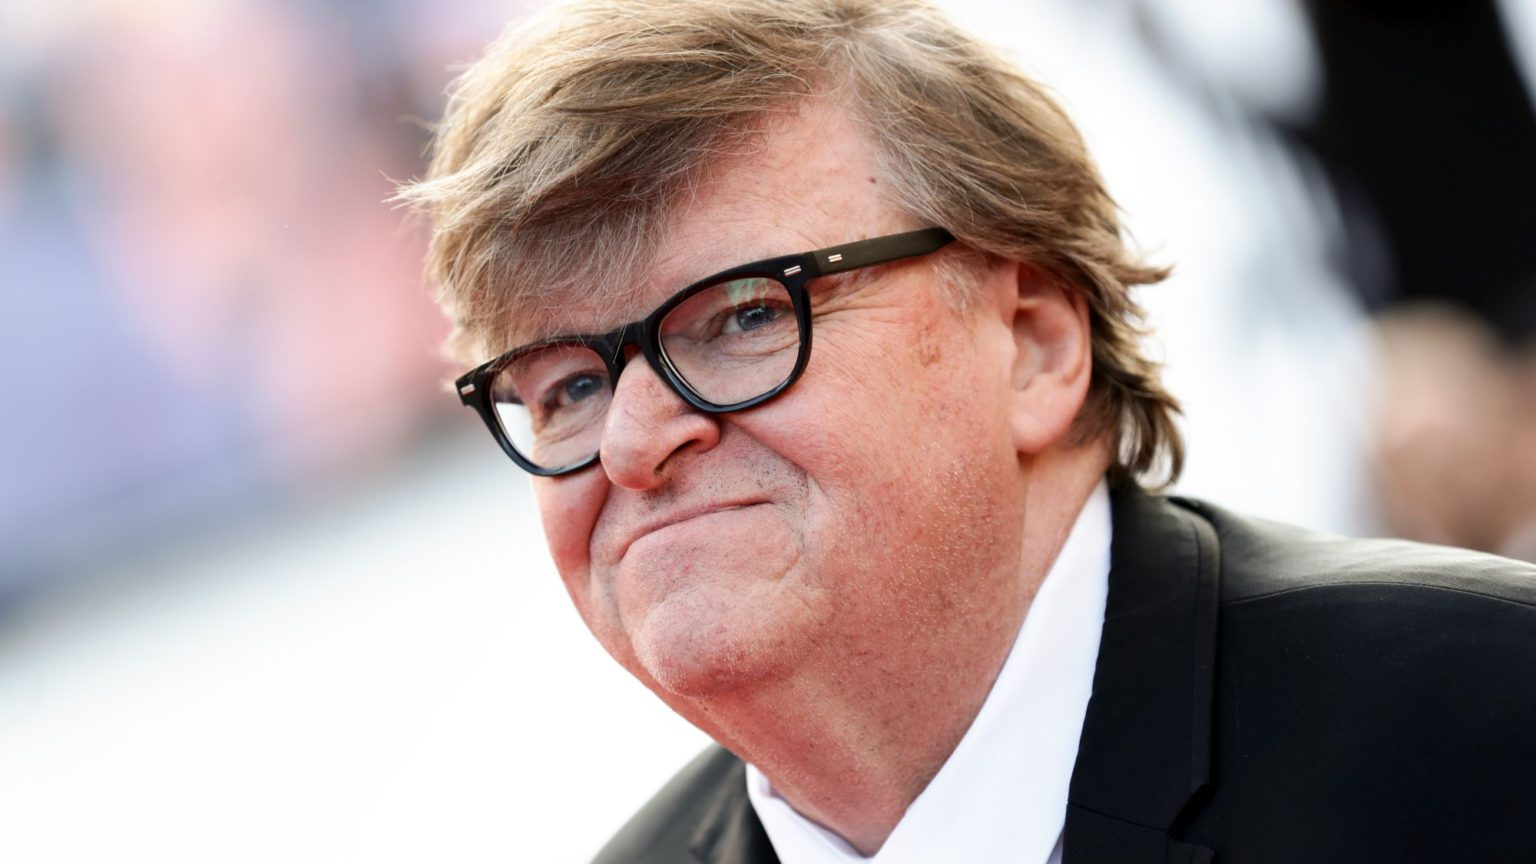 Michael Moore takes on the greens